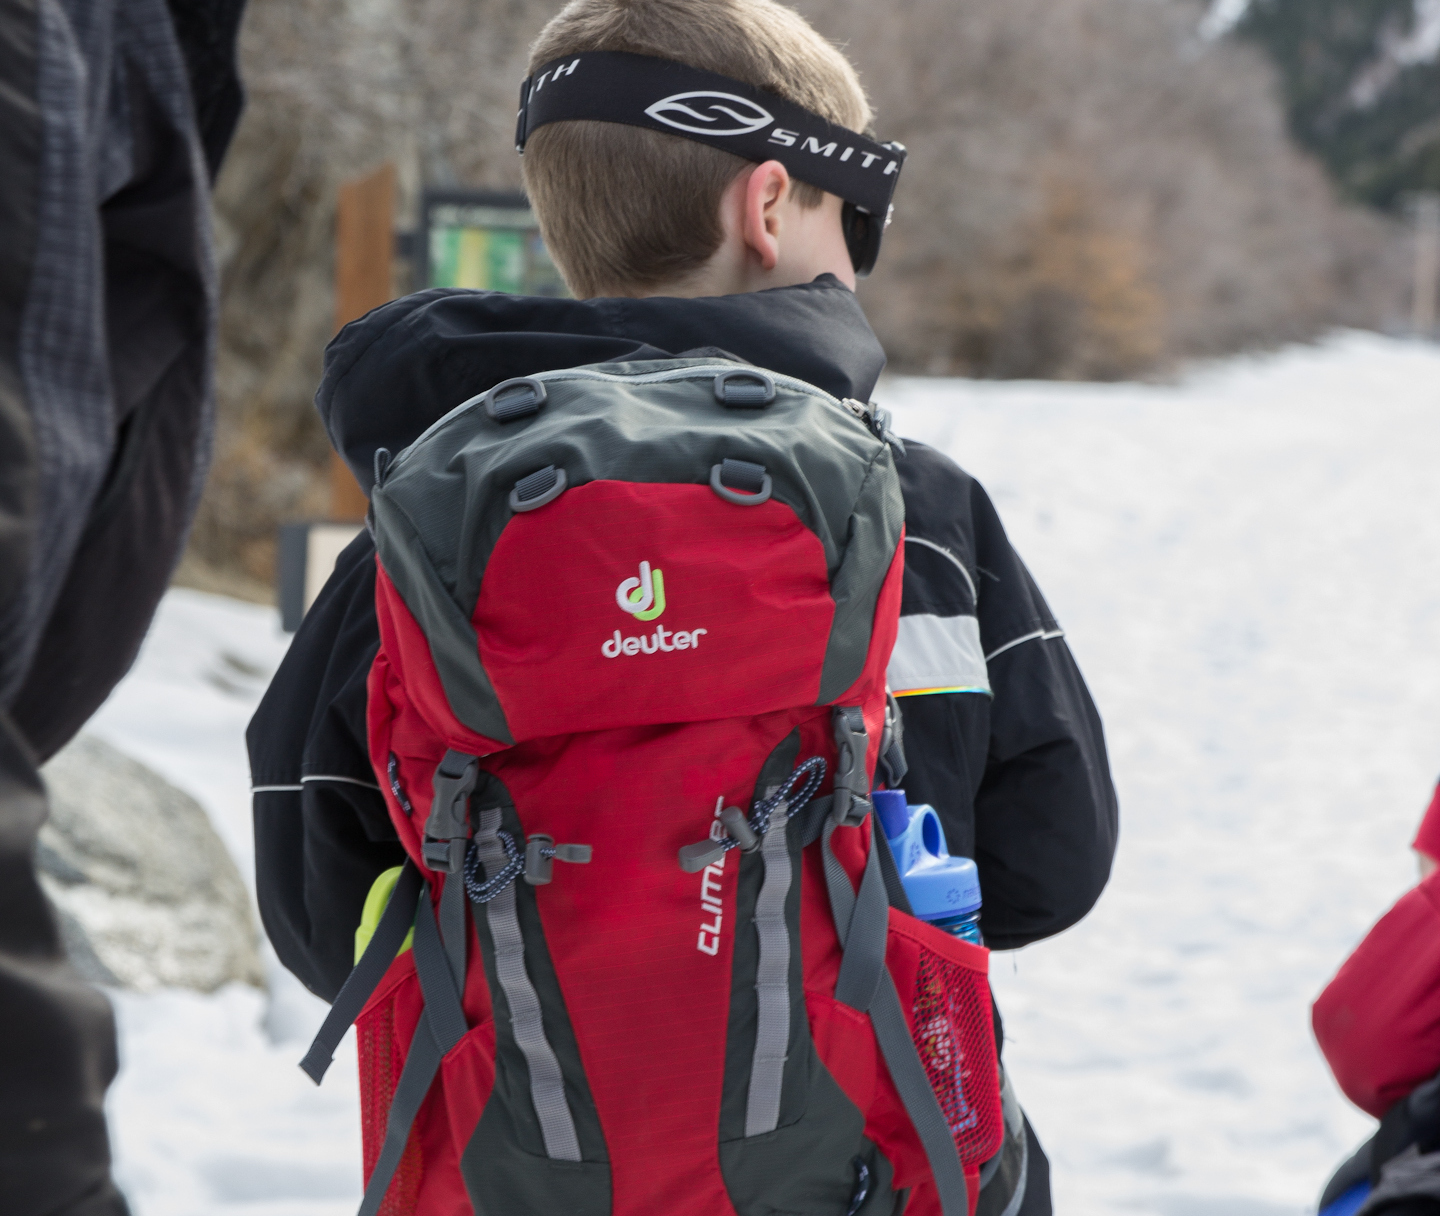 79c7a9f4d4fc Deuter Youth Climber Backpack - the kid project